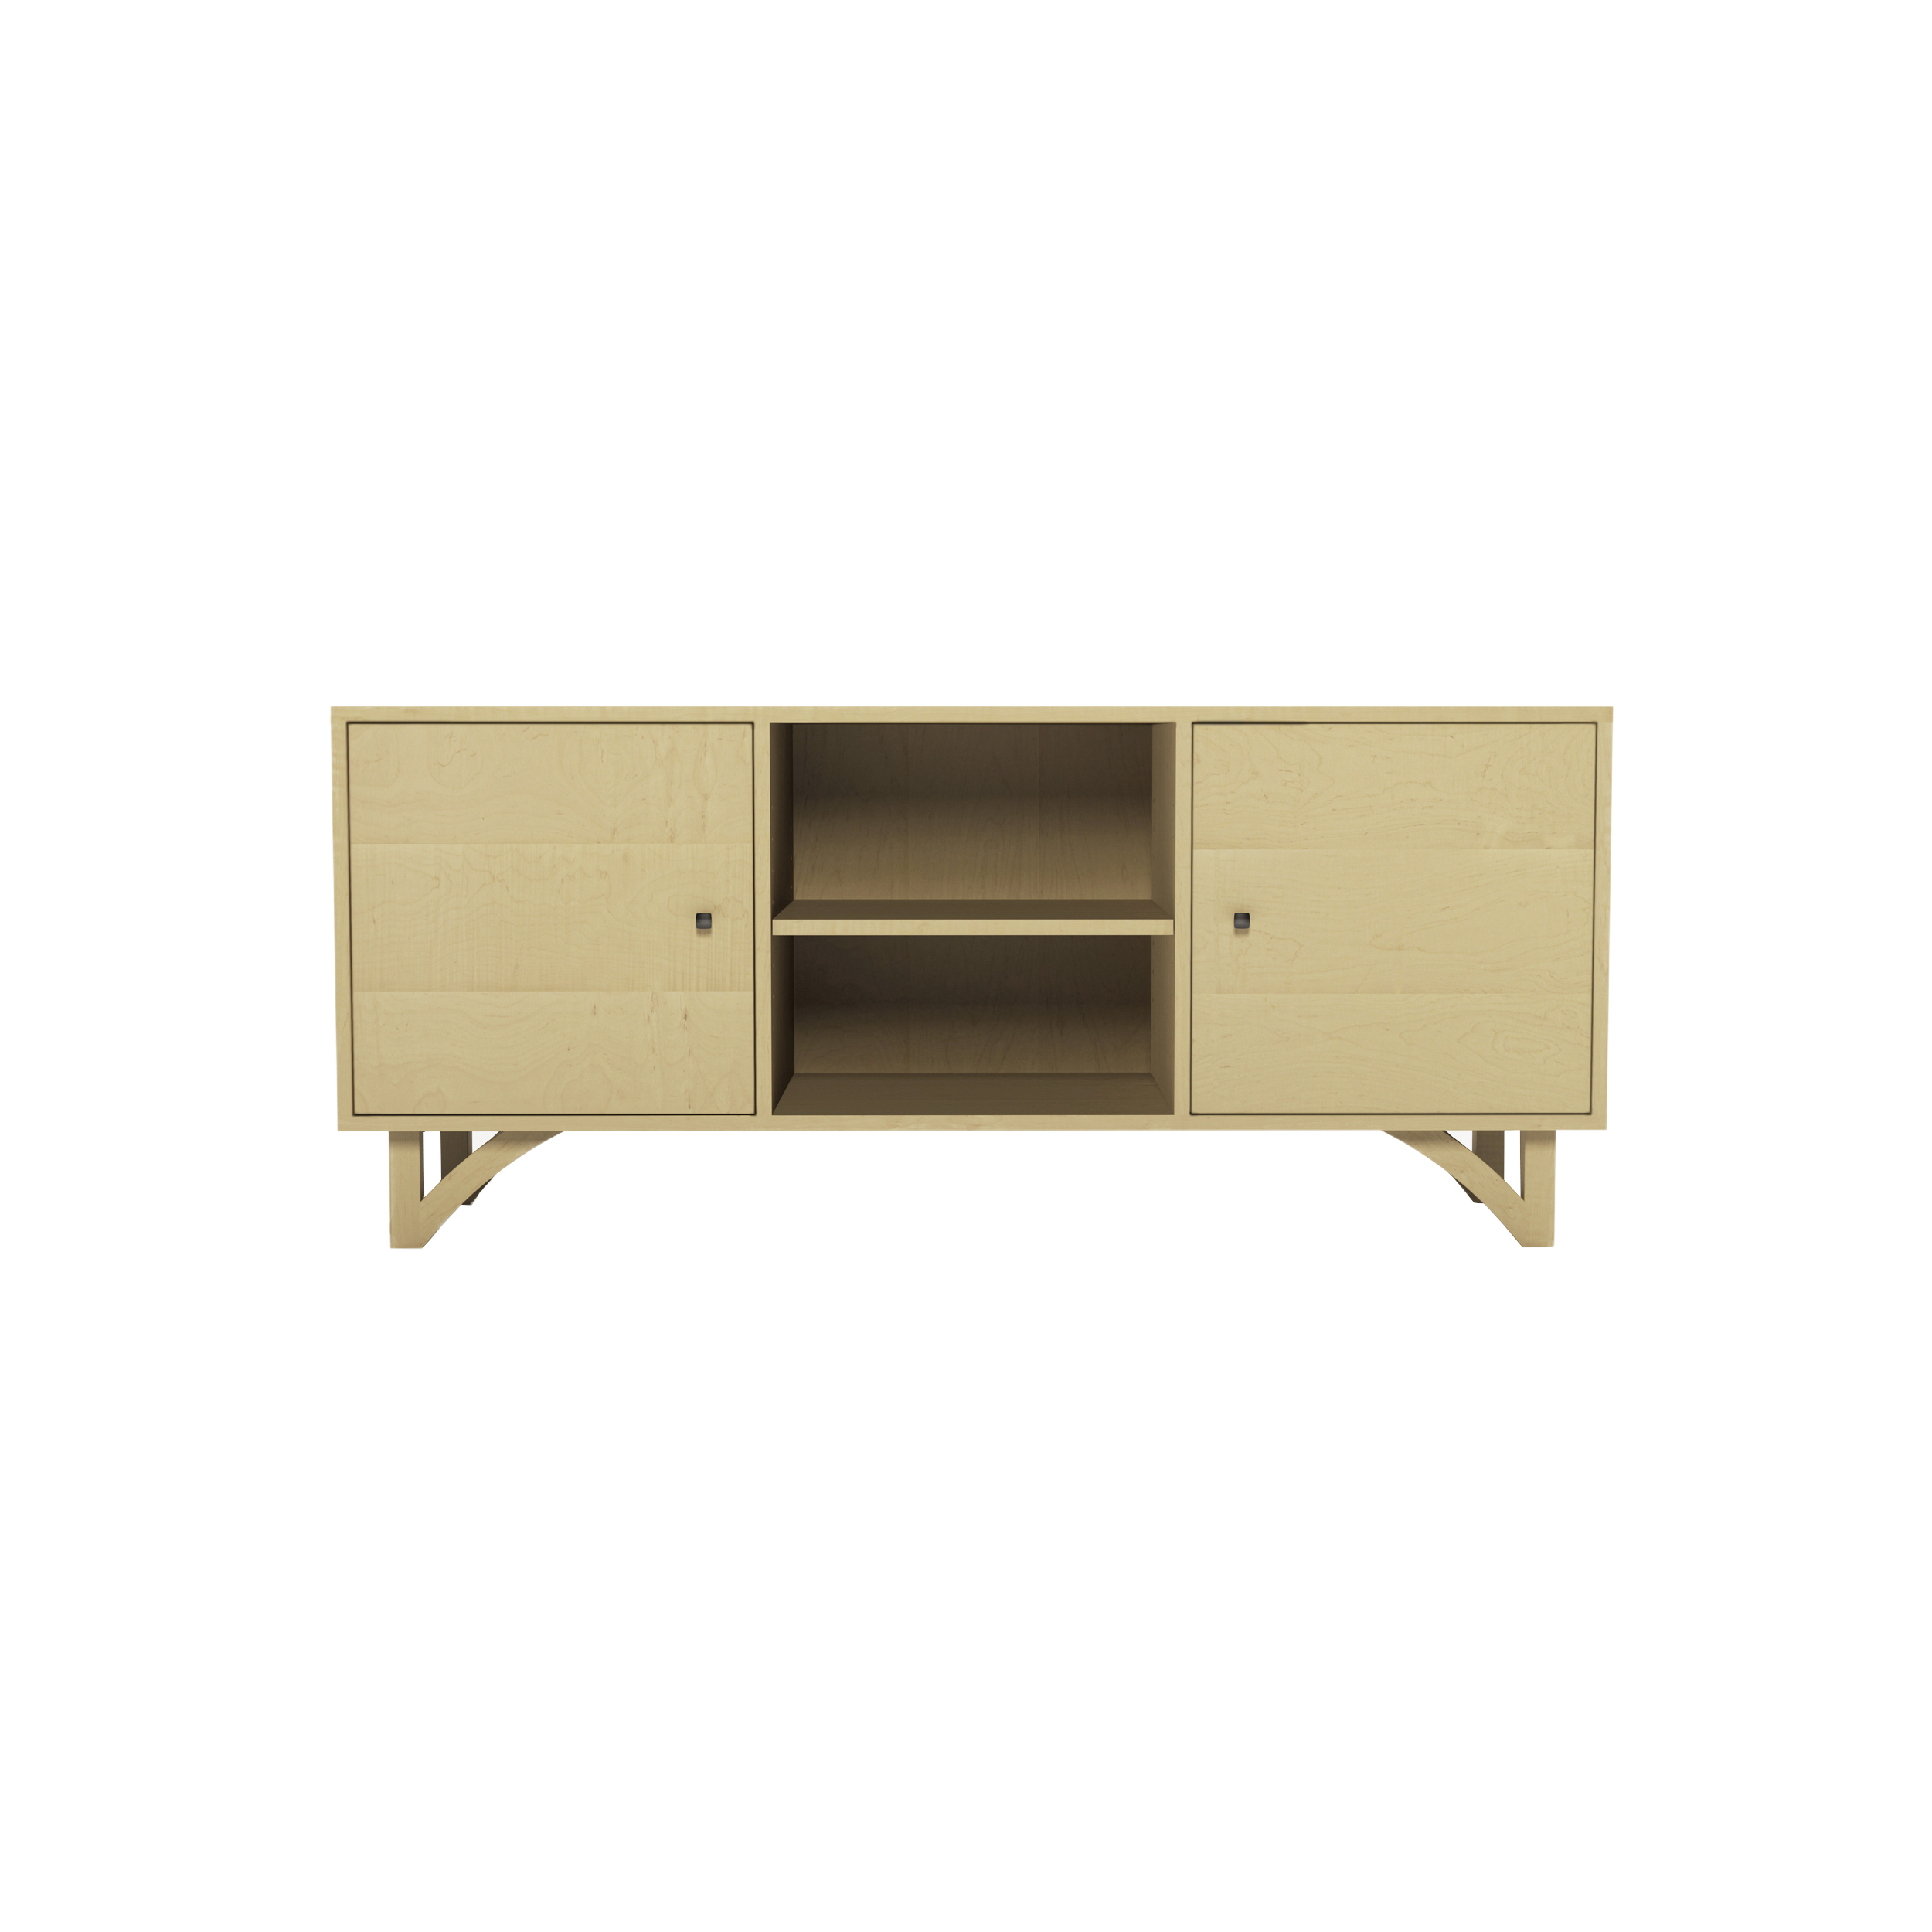 Series 454 Media Cabinet With Two Doors At 60″ In Width